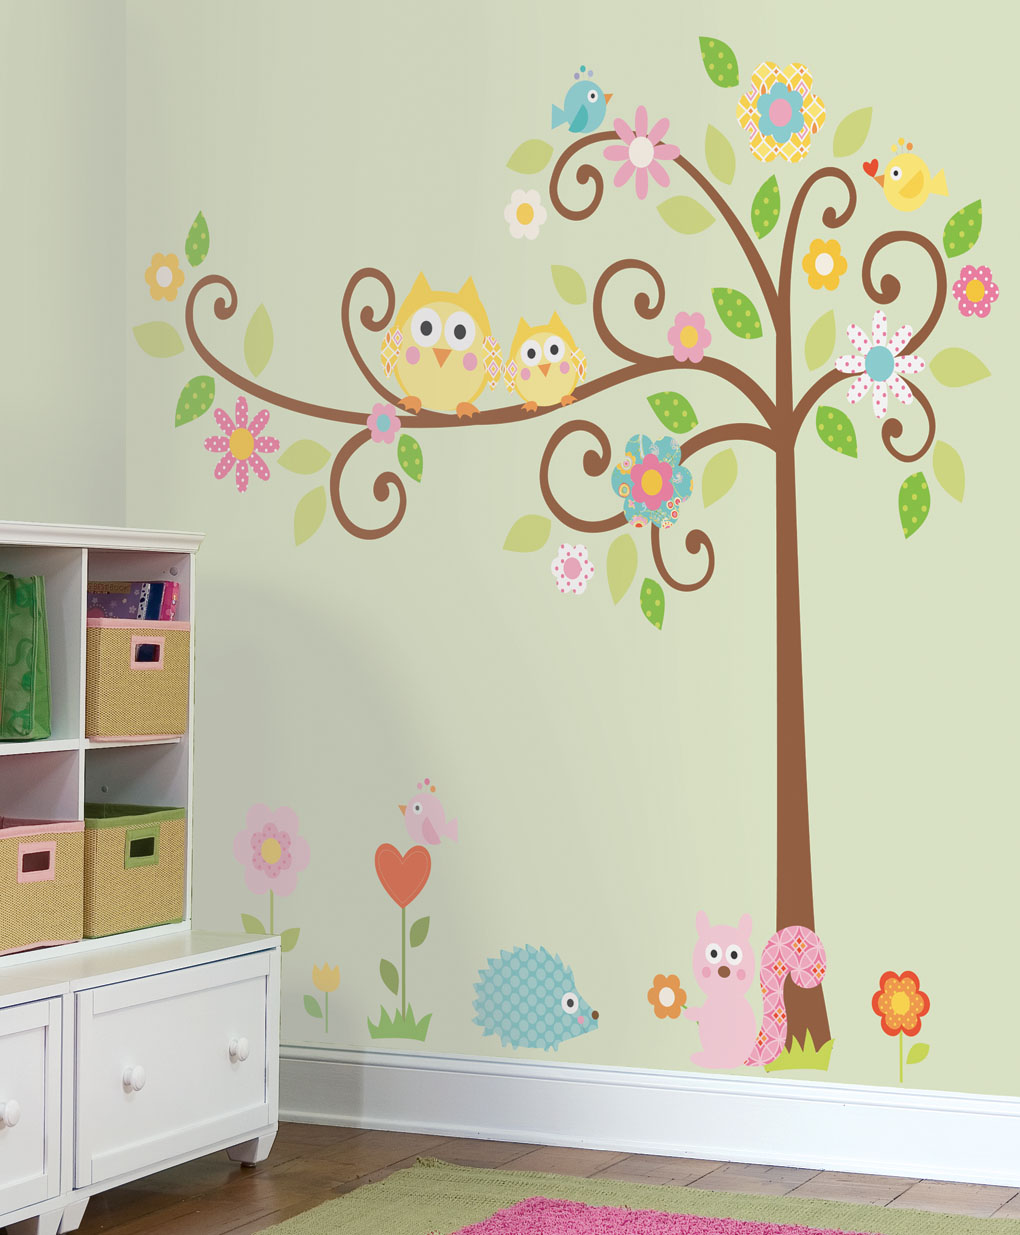 Wall decals kids art wall decor - Decorative wall sticker ...